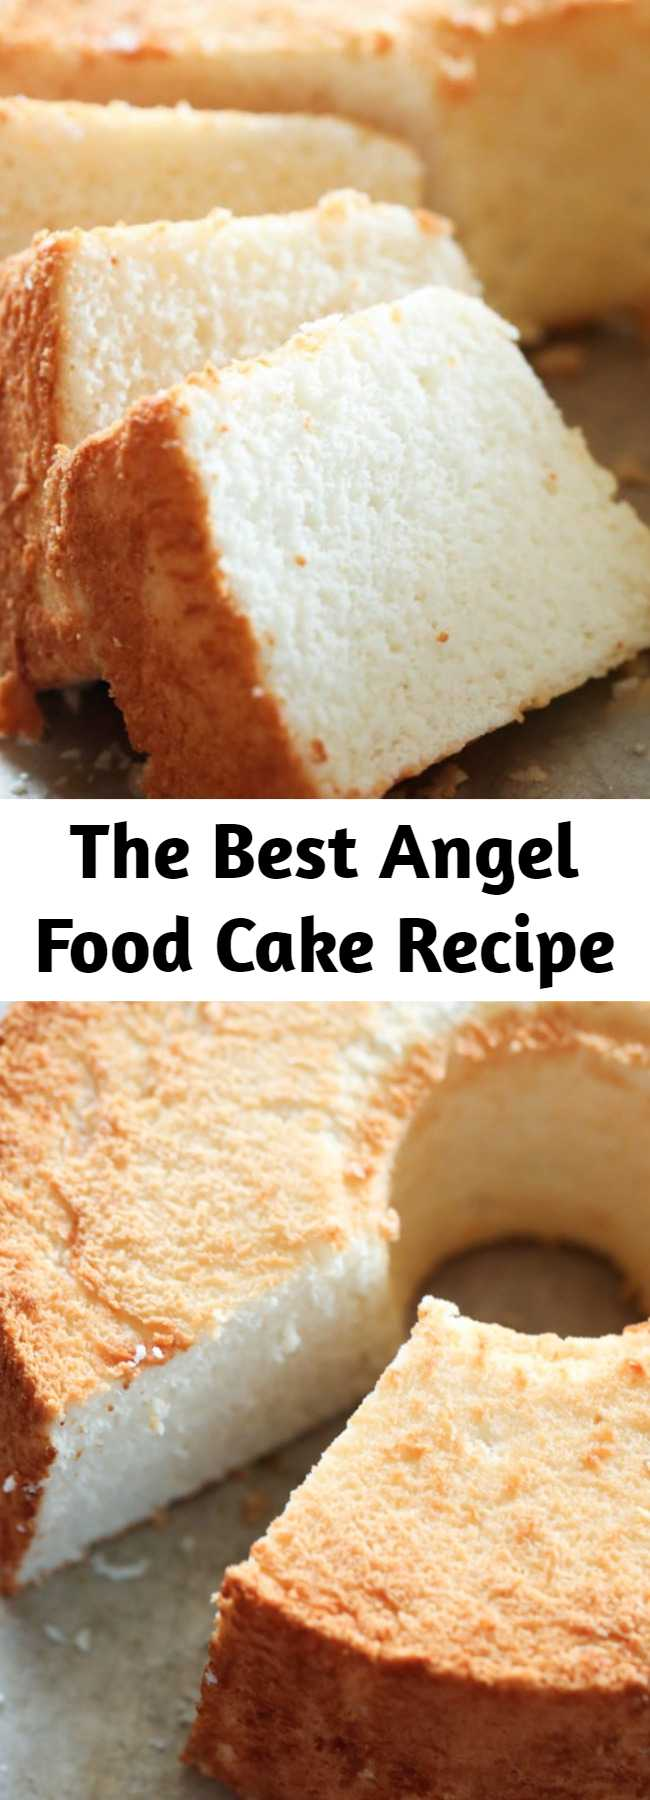 The Best Angel Food Cake Recipe - THE BEST Angel Food Cake from scratch! This cake has the most perfect texture and flavor. Once you make this, it will become your new favorite!